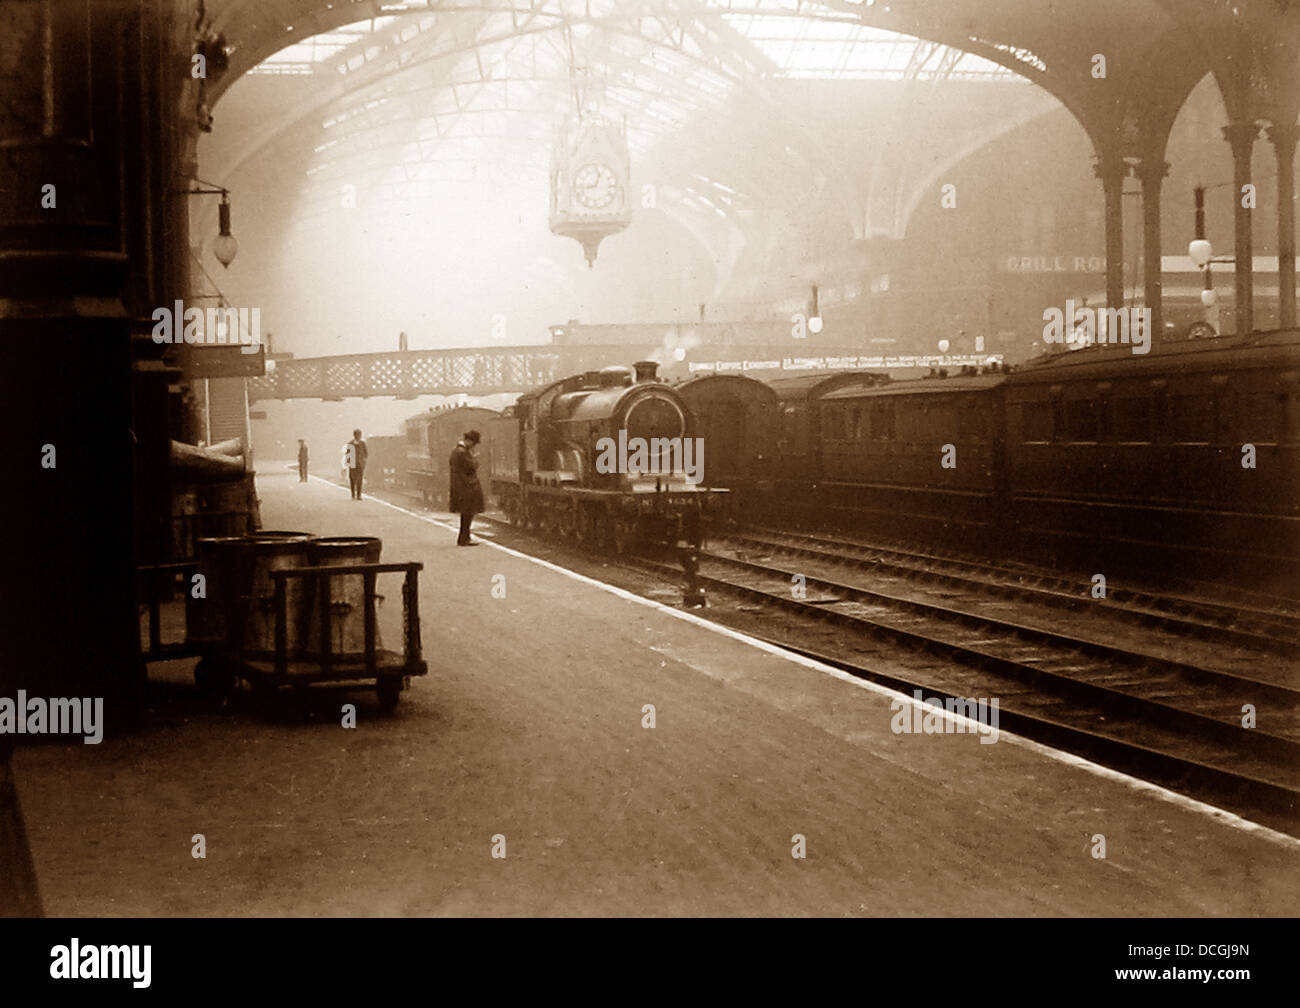 London Liverpool Street Station probably 1920s - Stock Image